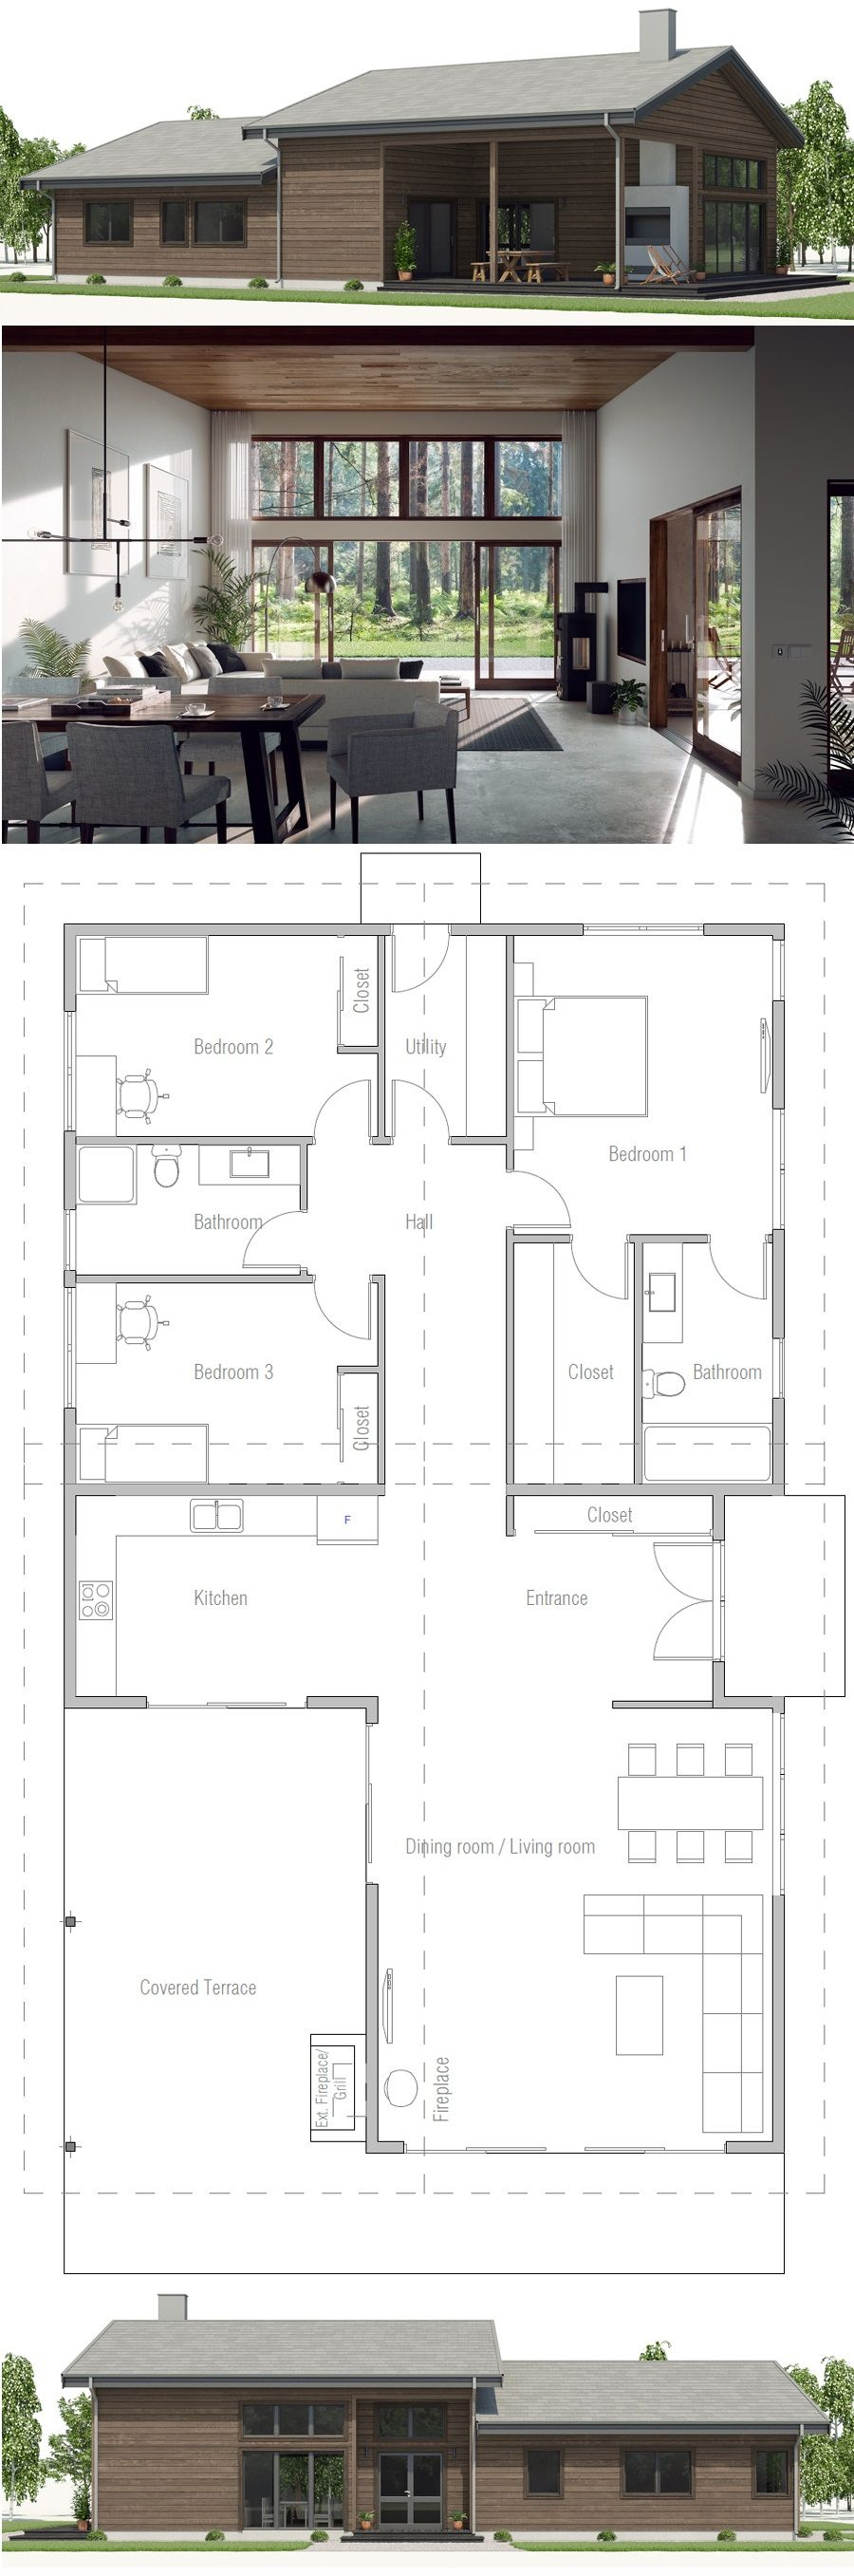 Litet Hus Hus Plan Huisplan Affordable House Plans Small House Plans House Plans